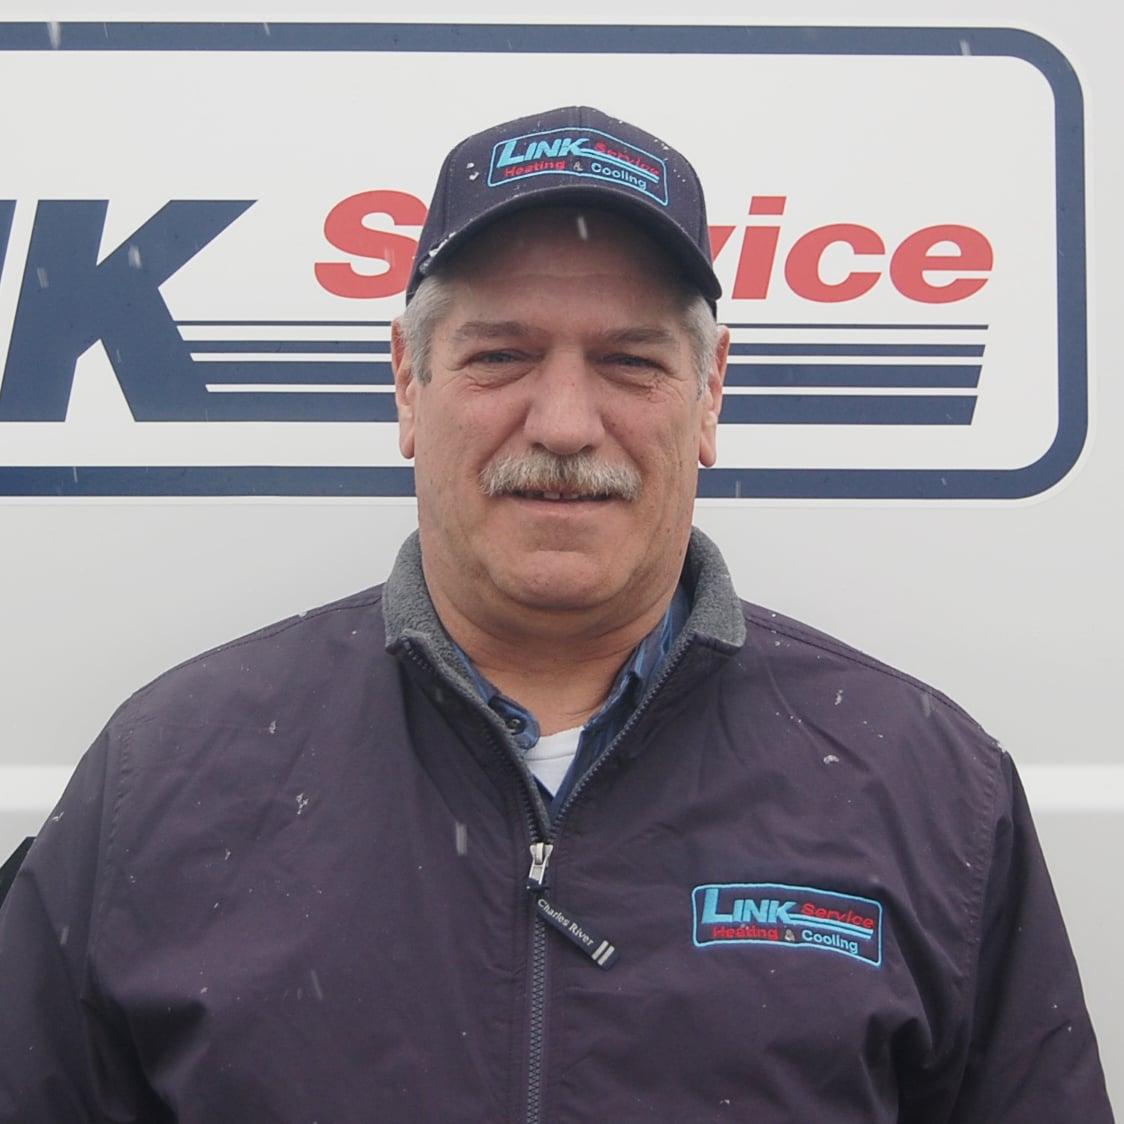 Pat S. of Link Service Heating & Cooling.